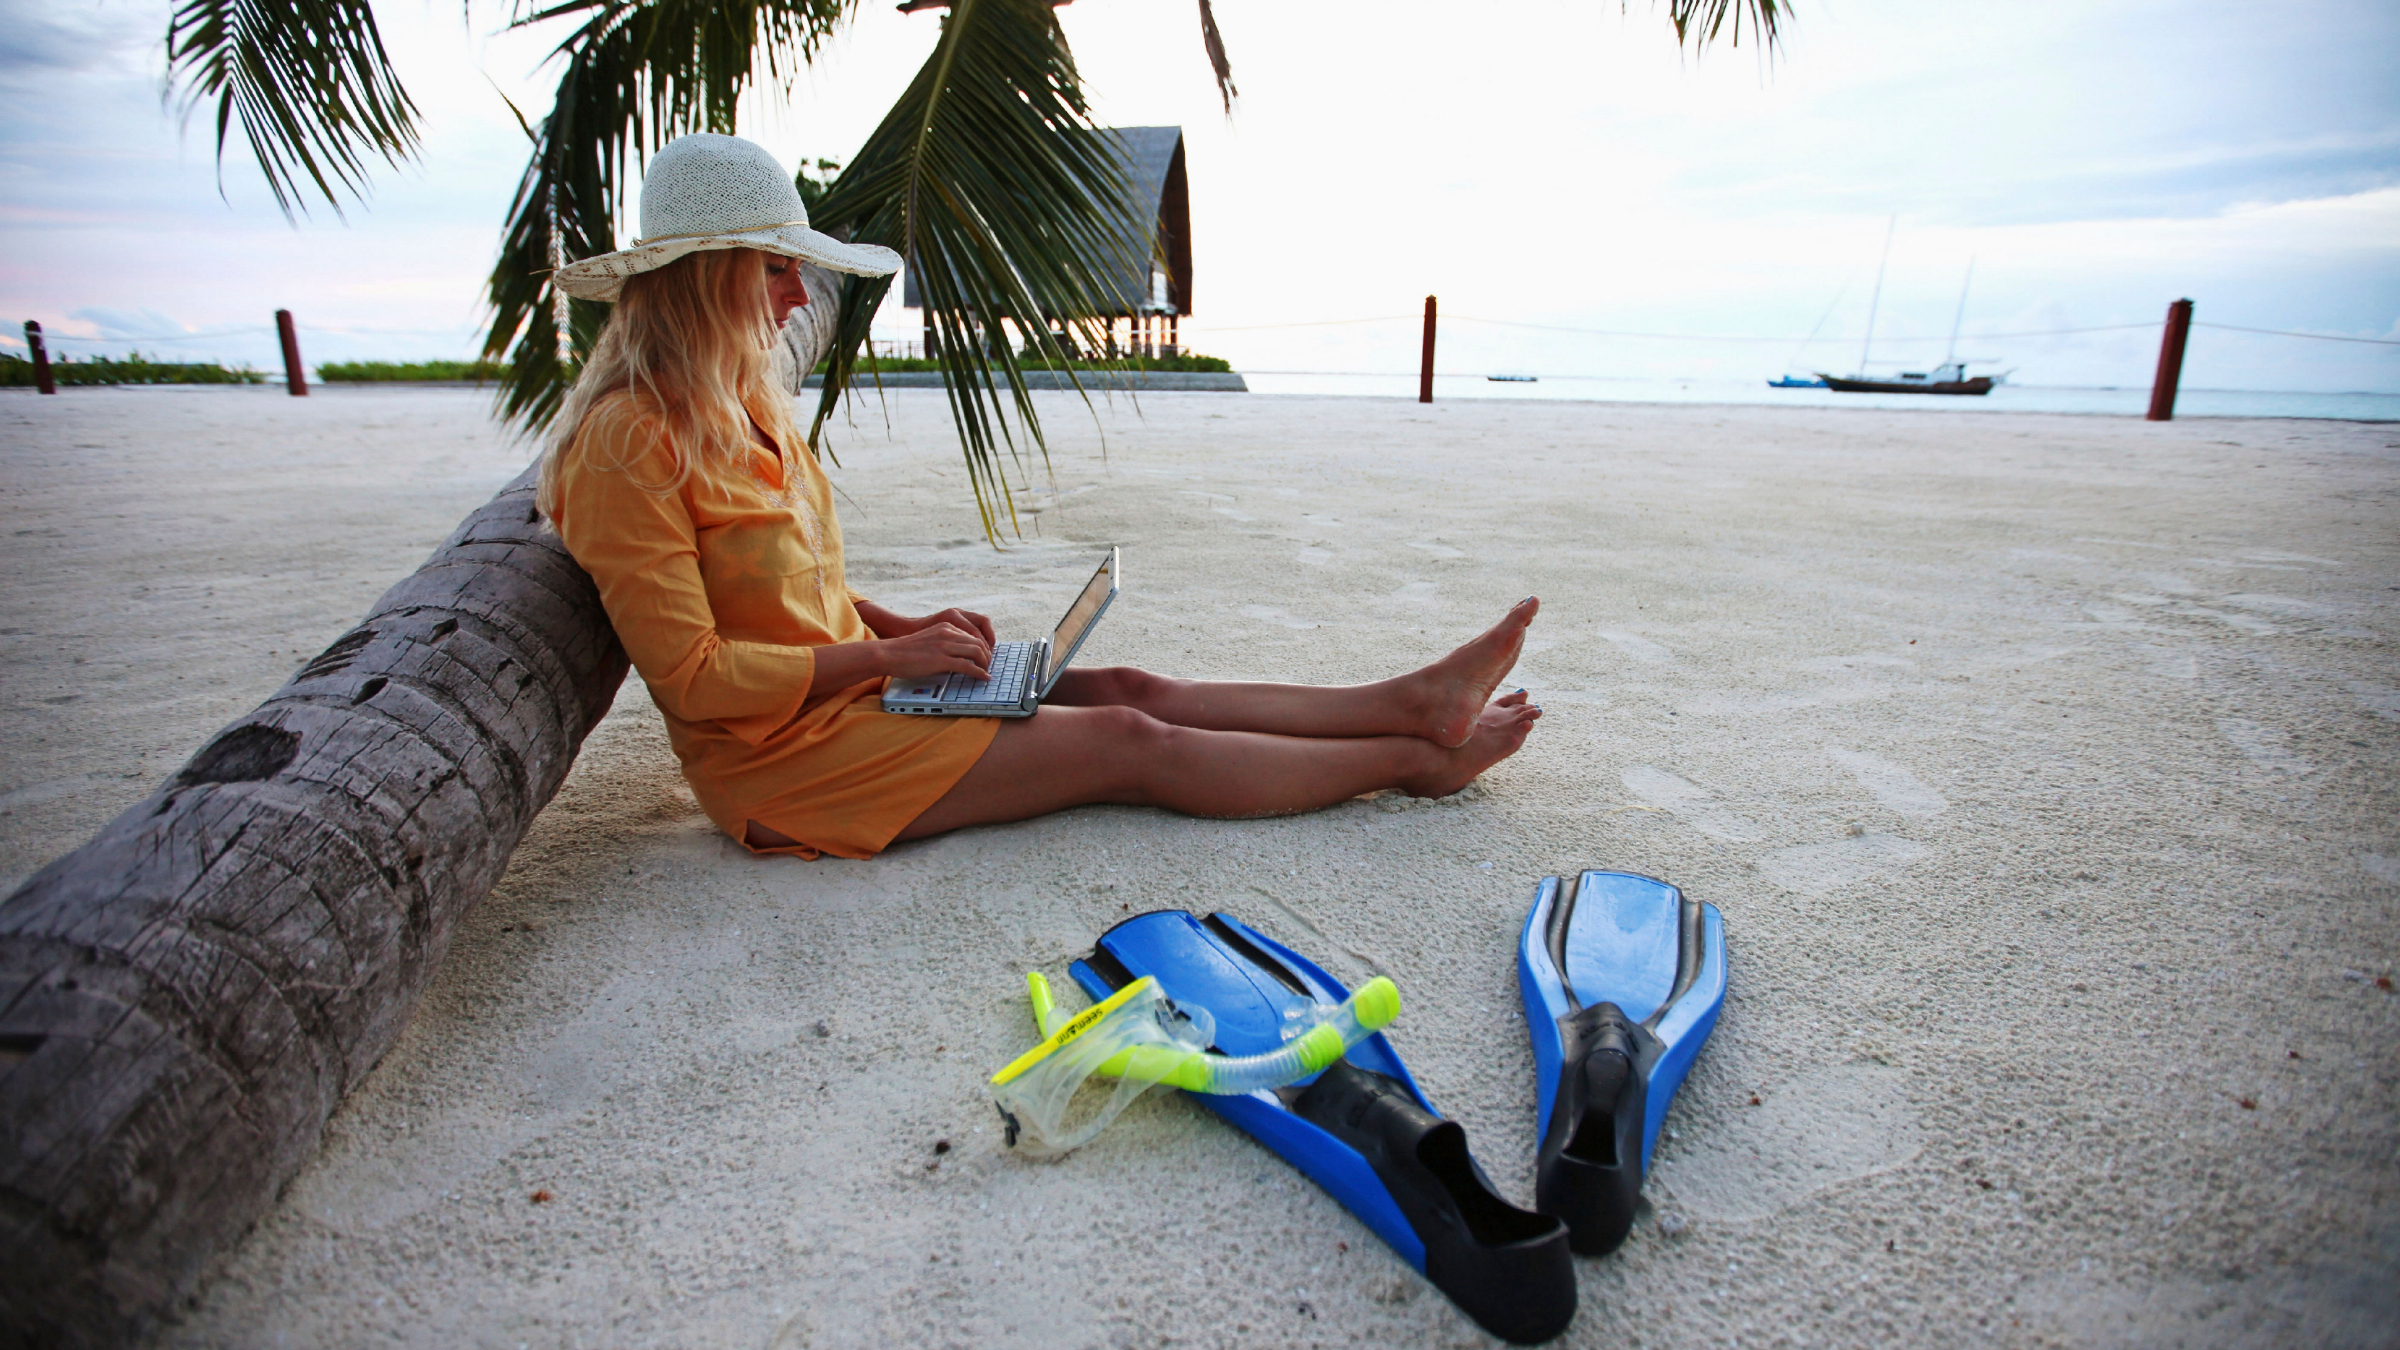 VILLINGILI, ADDU ATOLL , MALDIVES - SEPTEMBER 27: Woman sitting on Villingili beach, working with a notebook and mobile phone, surfing in the internet to run her business The island is owned by the luxurious Shangri-La's Villingili Resort and Spa Hotel on September 27, 2009 in Male, Maldives.The maldive islands consist of around 1100 islands and 400000 inhabitants spread on 220 islands. Till 2008, between 30 years reign of Maumoon Abdul  it was not allowed for tourists to visit local islands without special permission. Now from Villingili Island, tours are possible to visit the local islands of Addu Atoll. (Photo by EyesWideOpen/Getty Images)